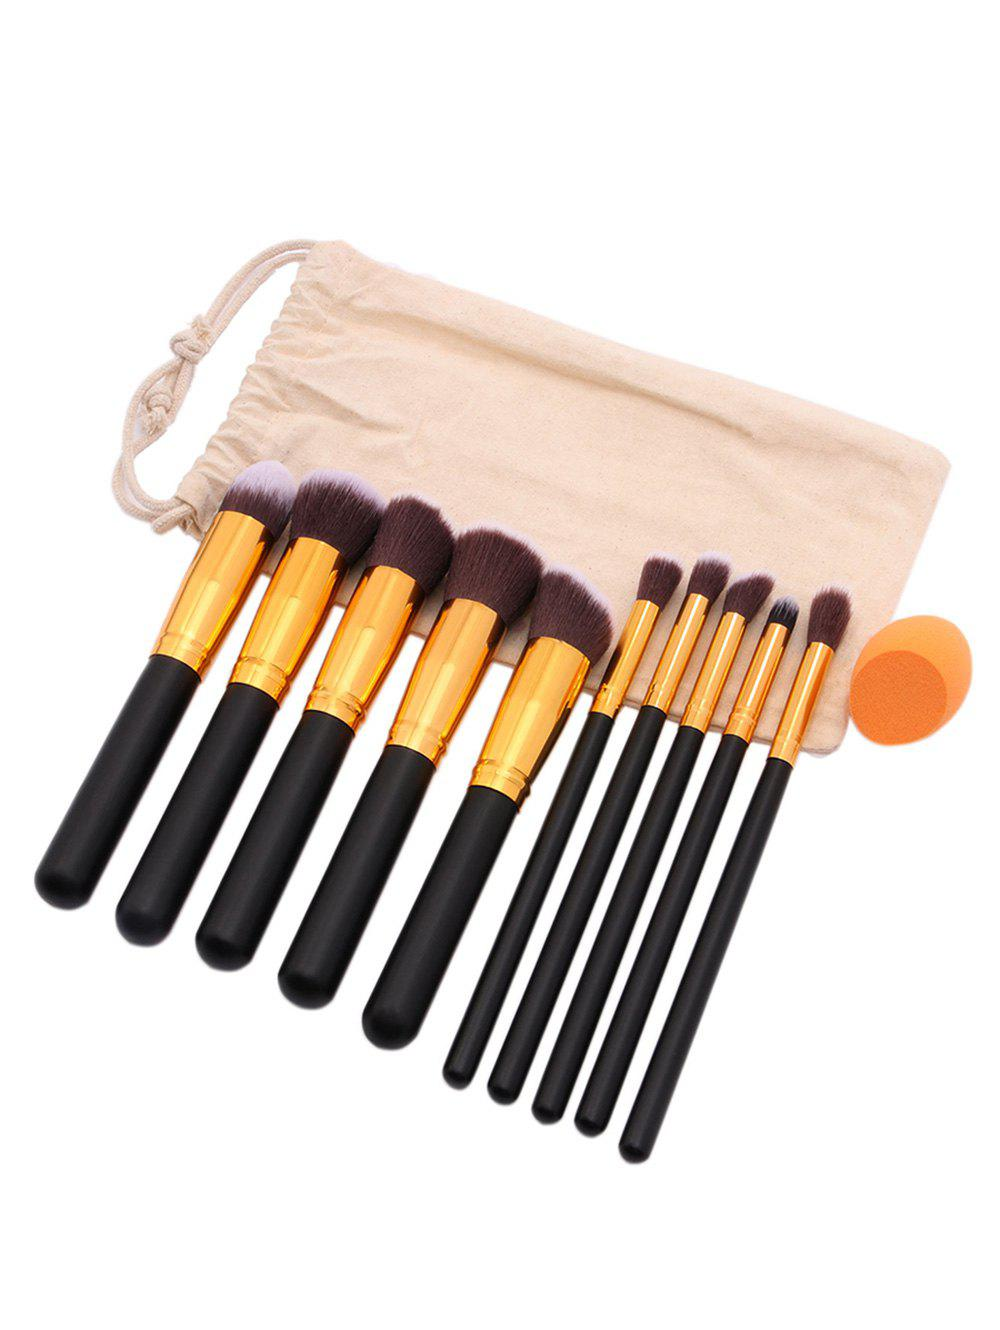 Sale Cosmetic 10Pcs Soft Hair Makeup Brush Set Makeup Sponge with Bag